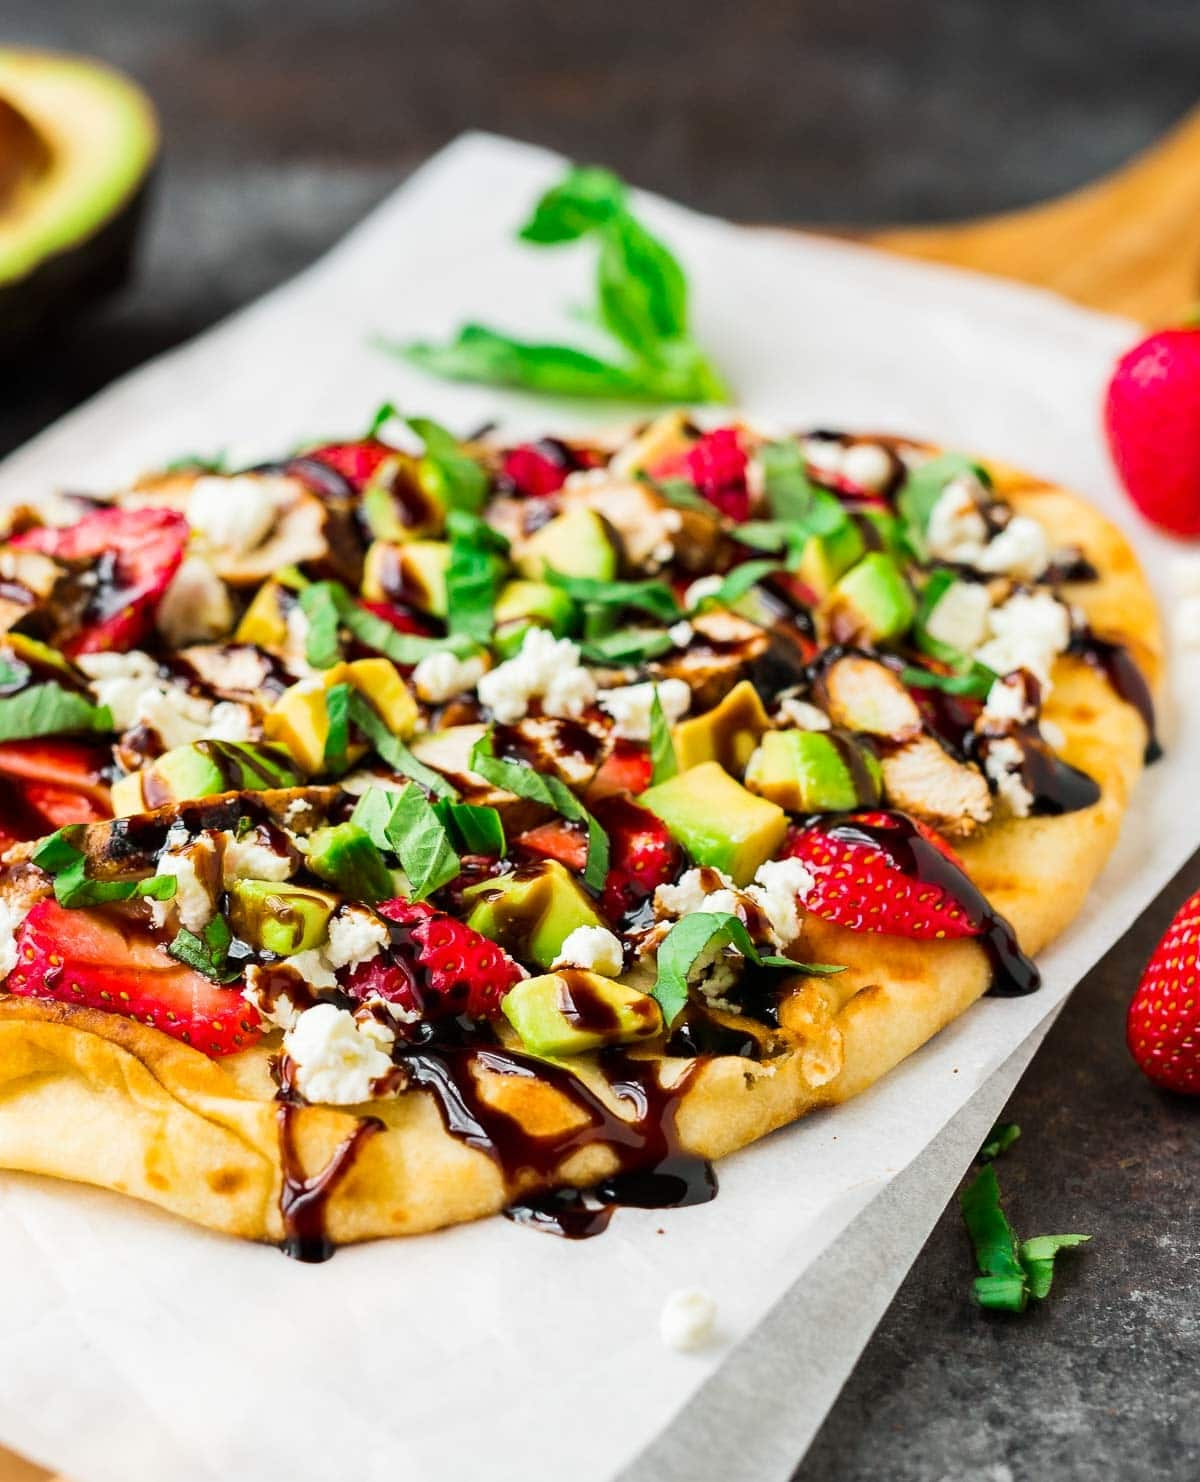 Easy Naan Pizza on the Grill with Strawberry, Chicken, Avocado, and Goat Cheese. Try this with any of your favorite pizza toppings! Recipe at wellplated.com | @wellplated